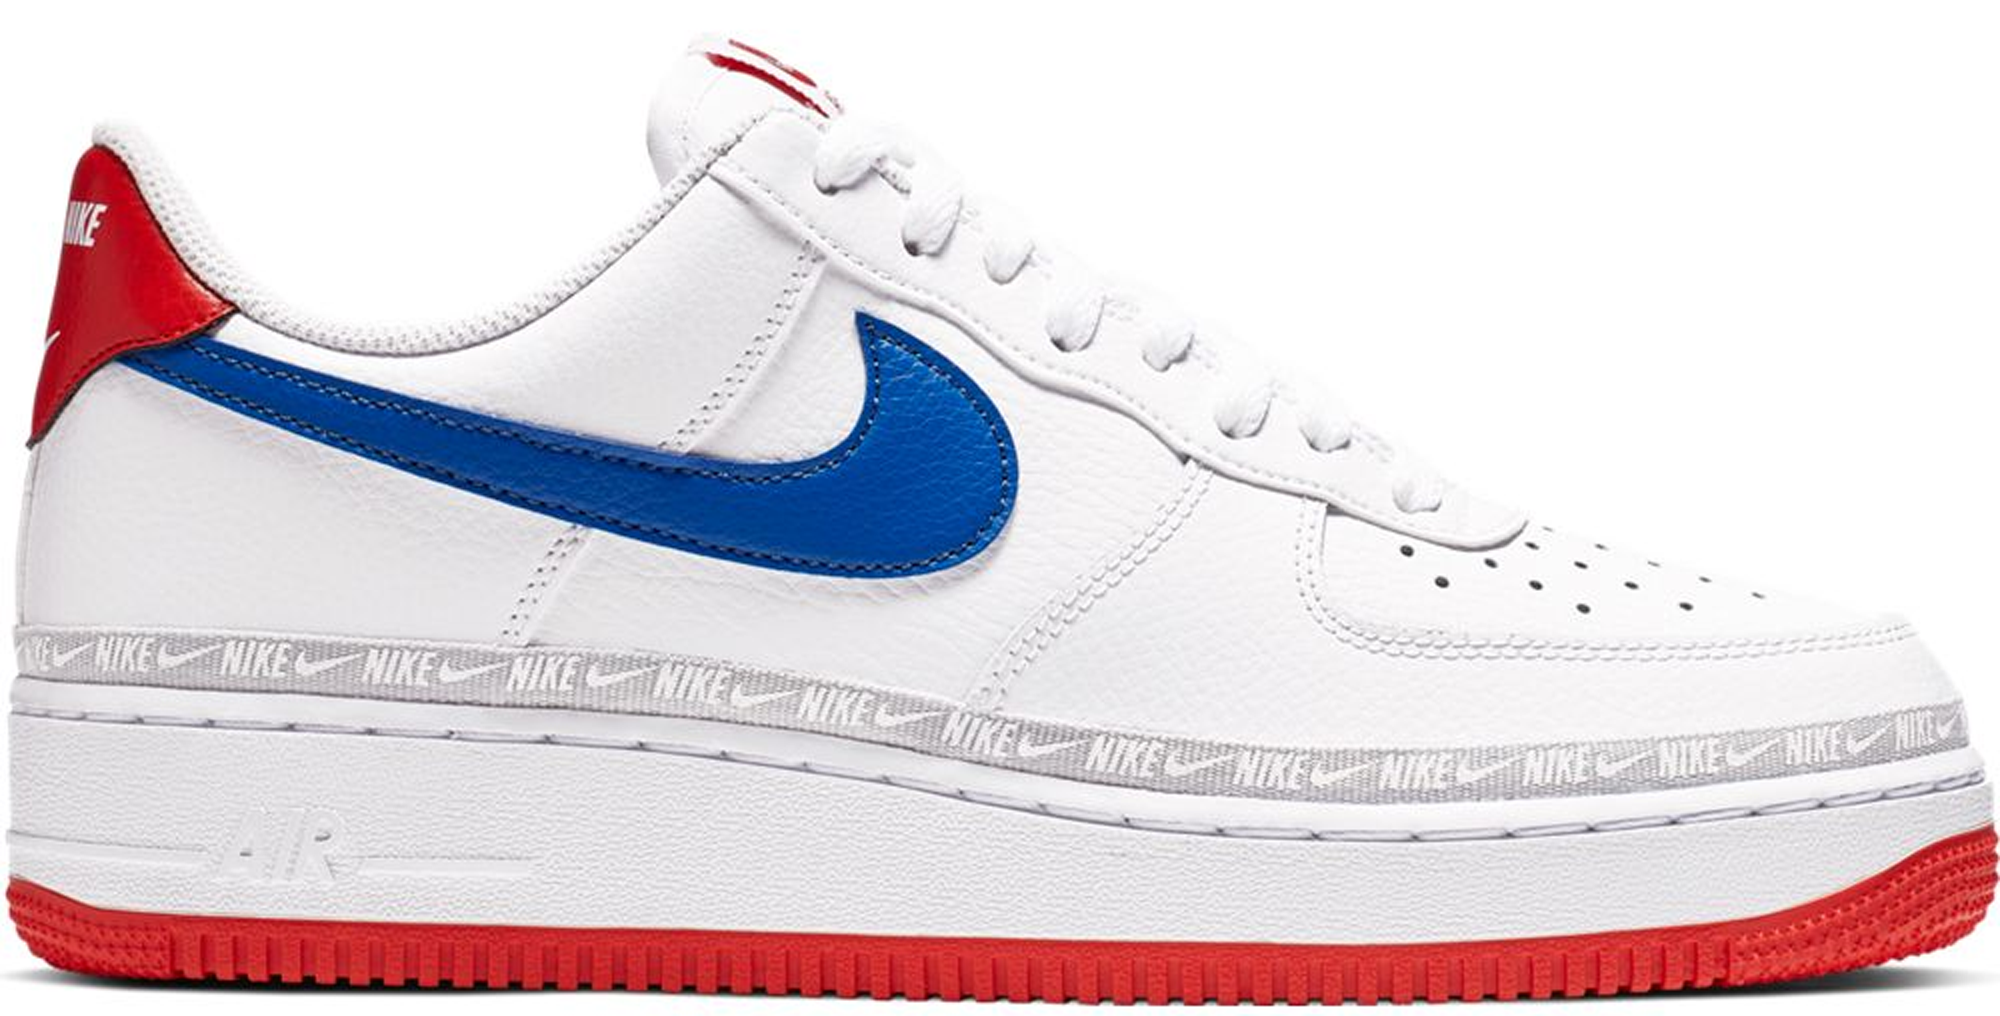 Nike Air Force 1 Low Overbranding White